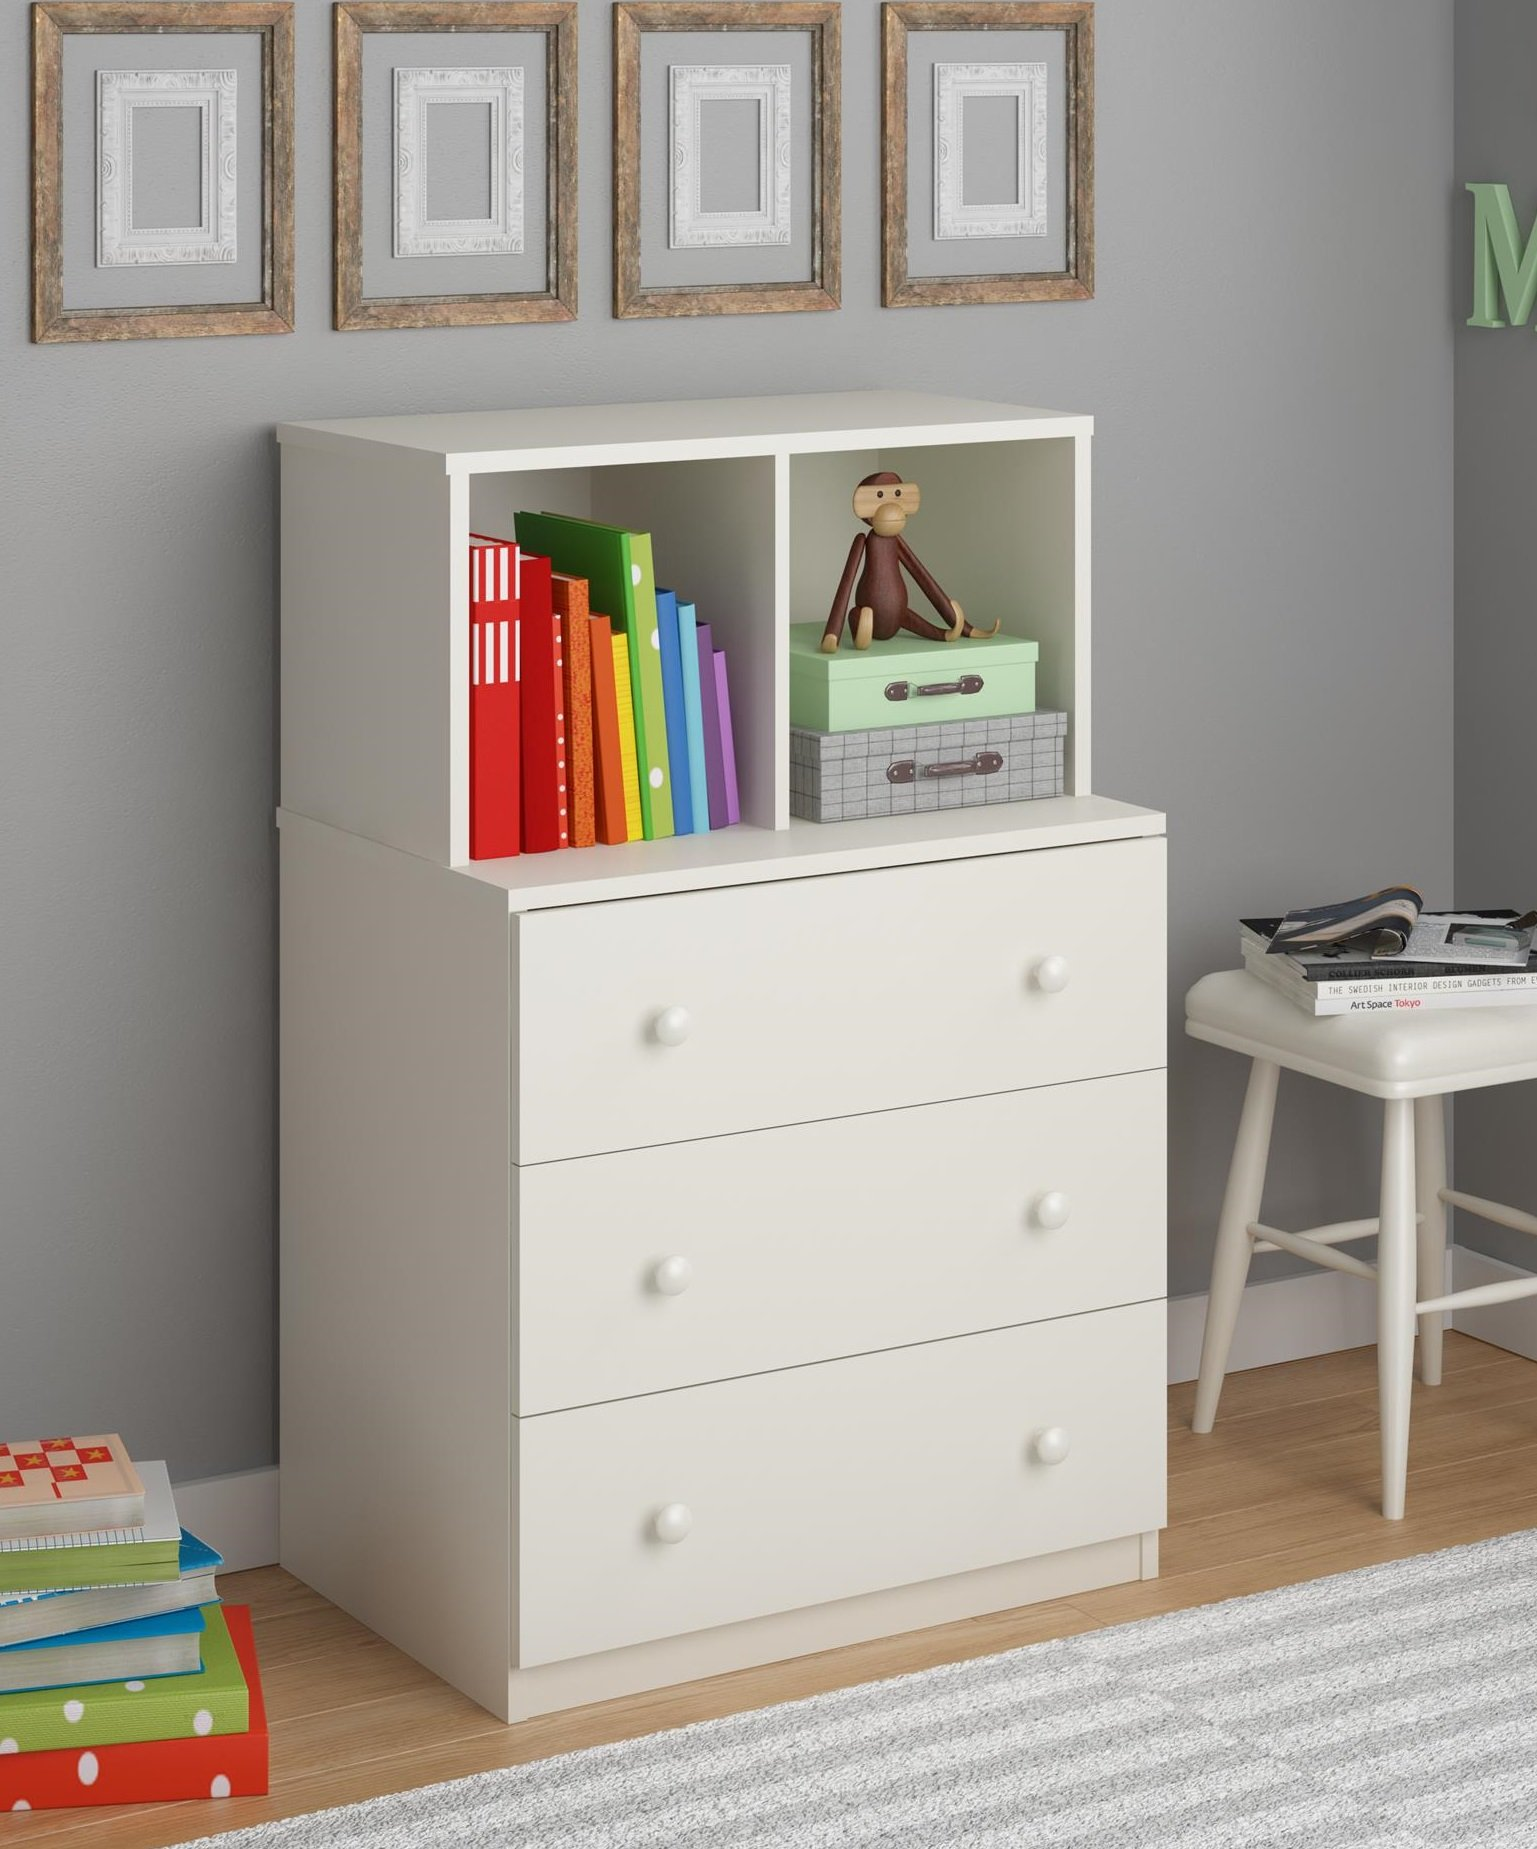 Ameriwood Home Skyler 3 Drawer Dresser with Cubbies, White by Ameriwood Home (Image #6)